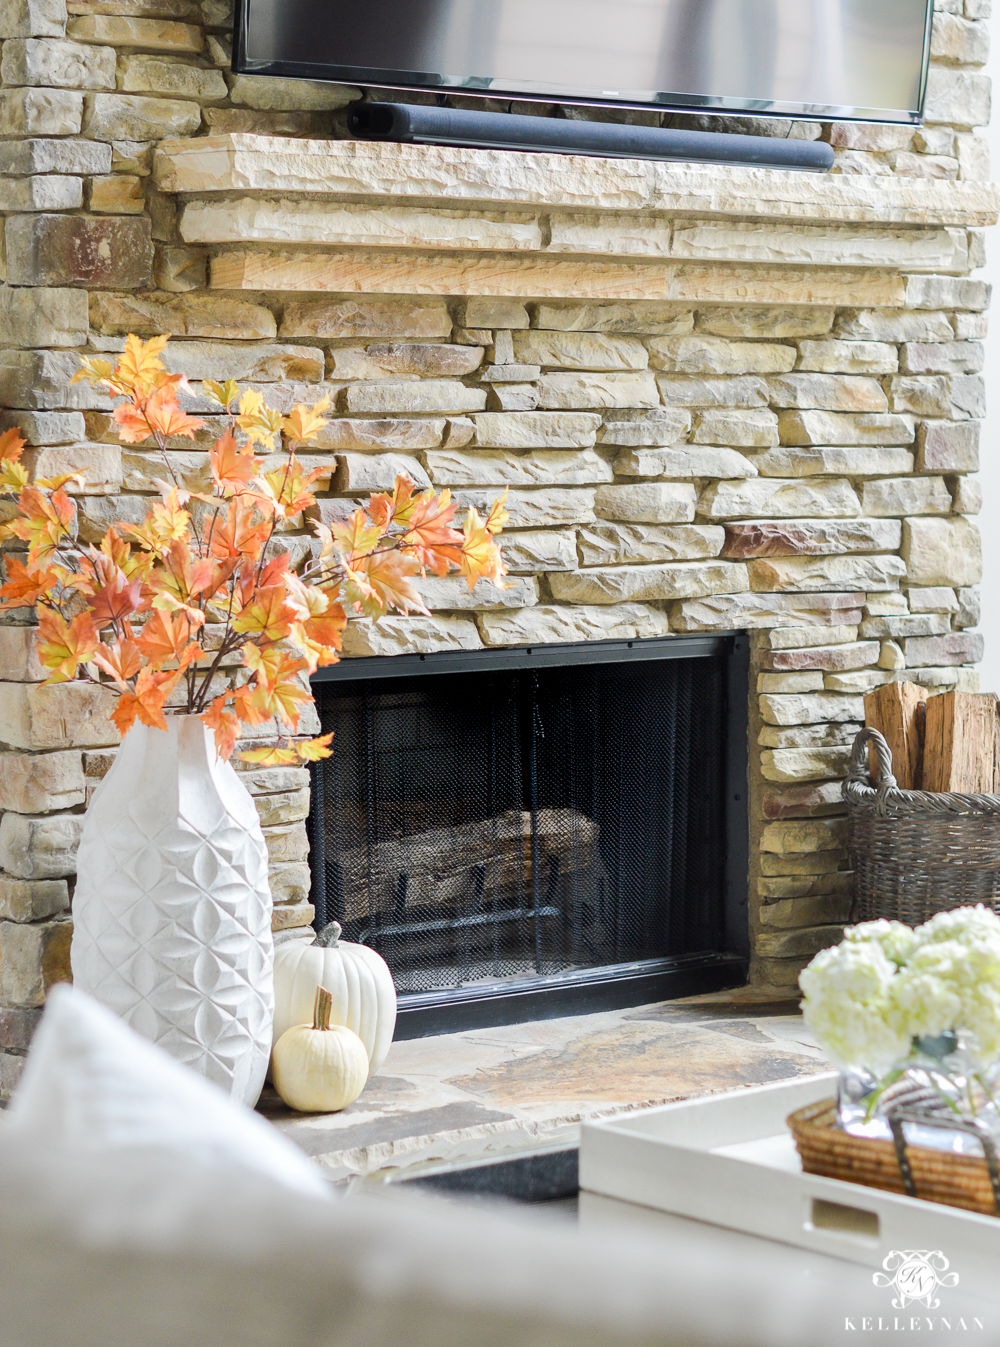 2017 Fall Home Tour with Yellow and Orange Leaves- fireplace hearth with leaves